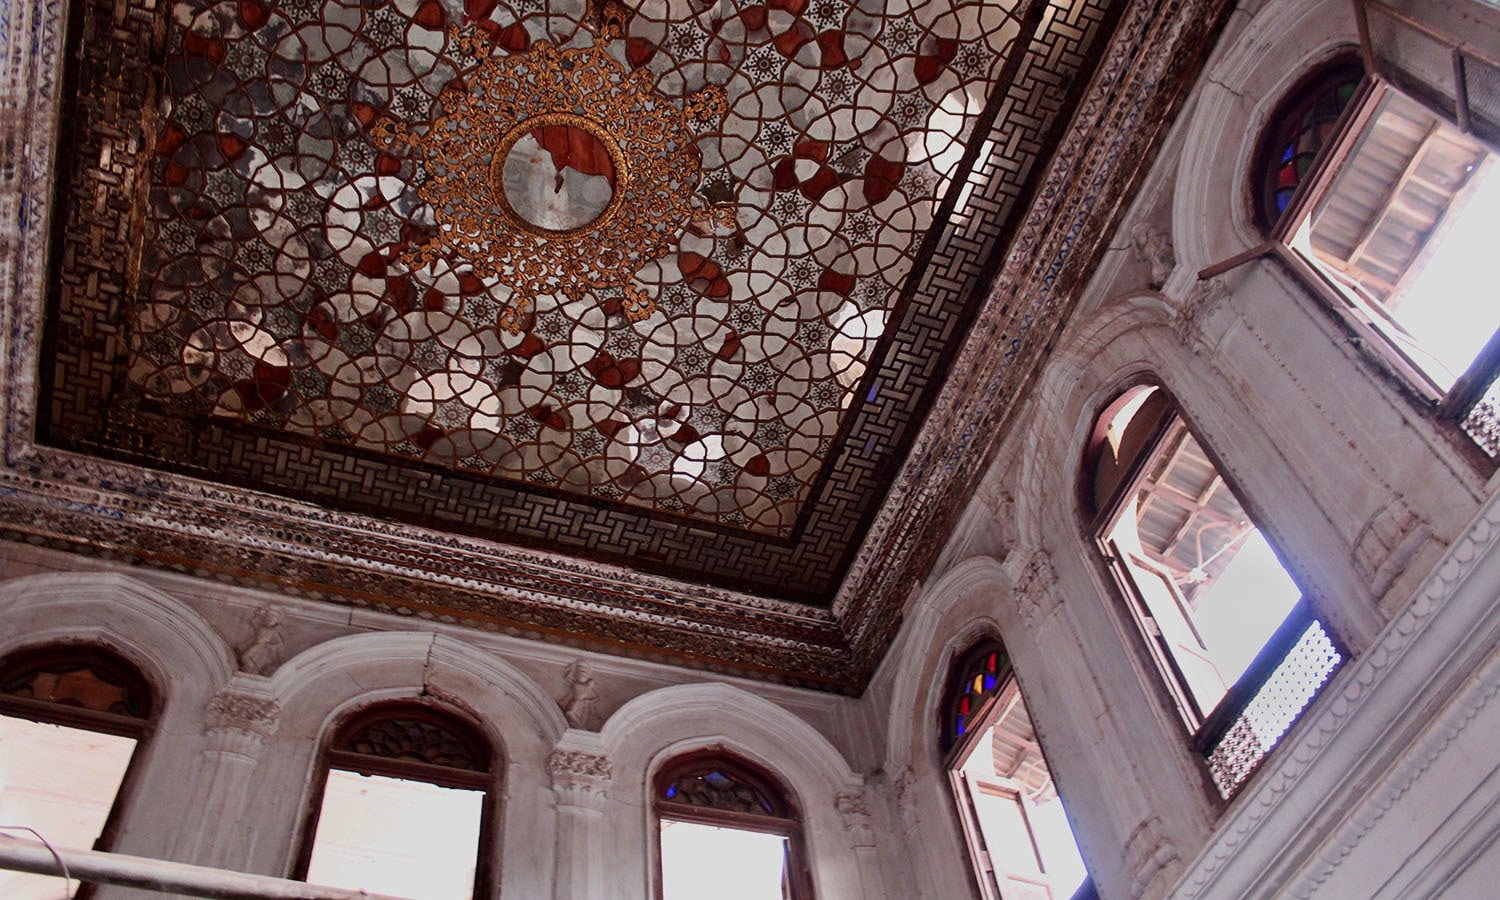 Interior of the musaferkhana